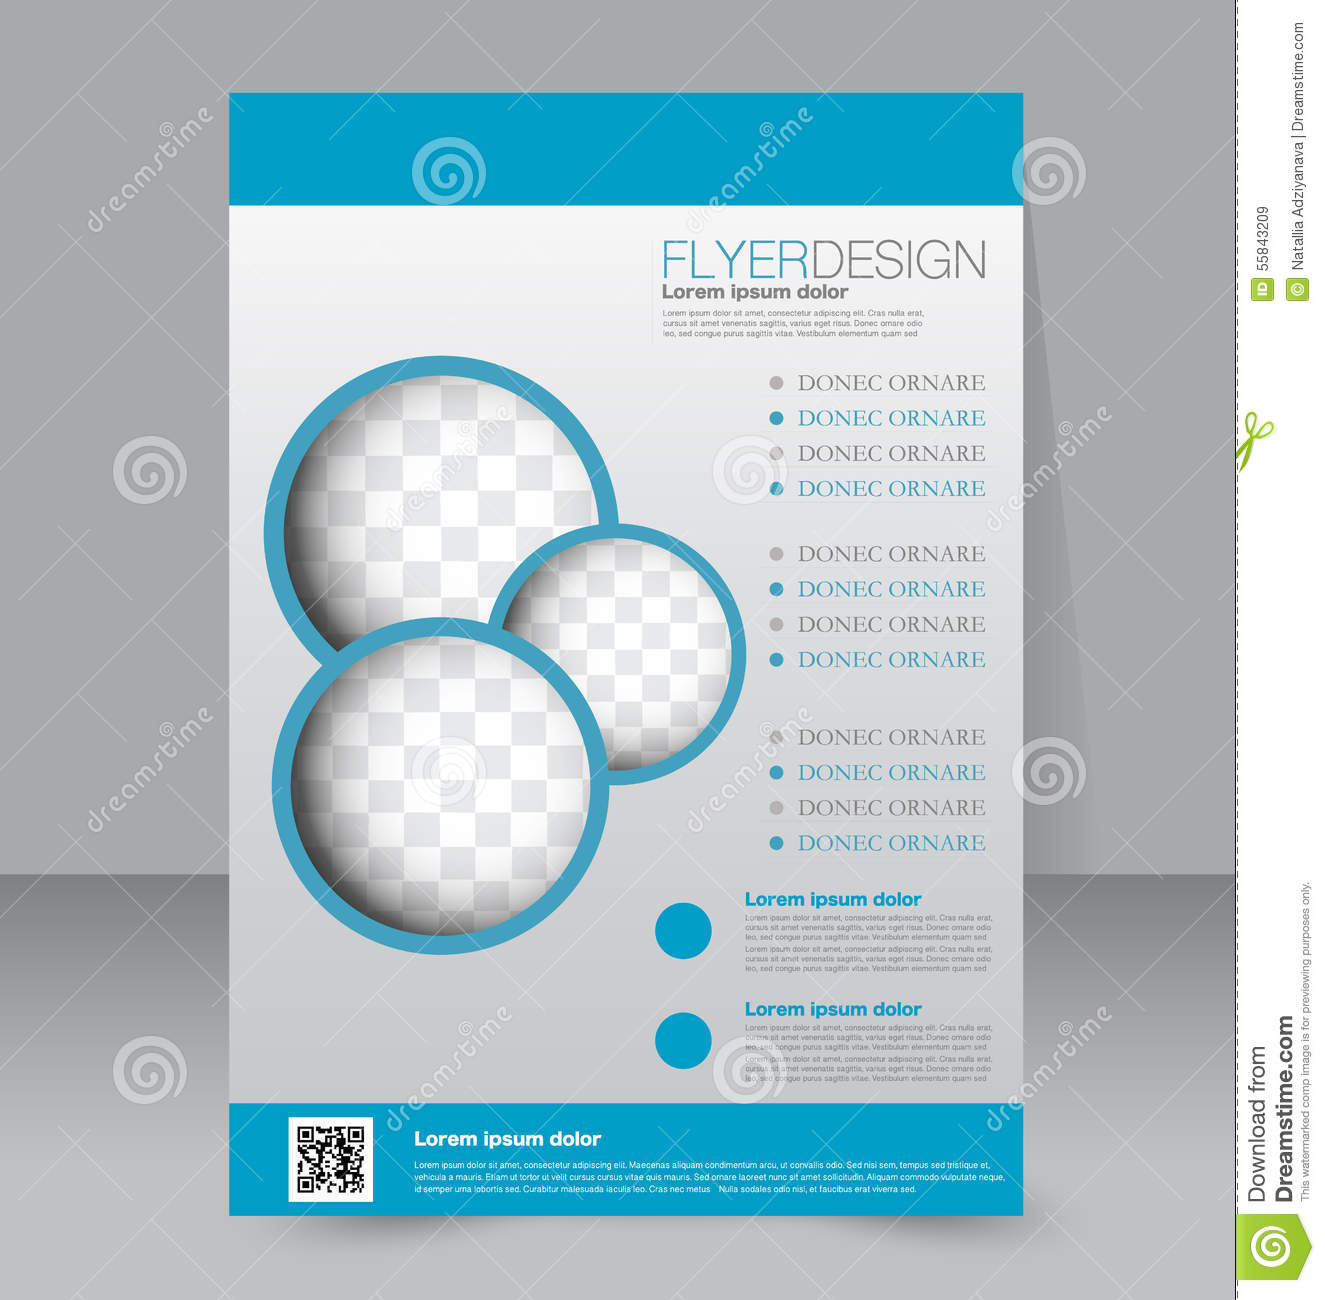 Poster design download - Royalty Free Vector